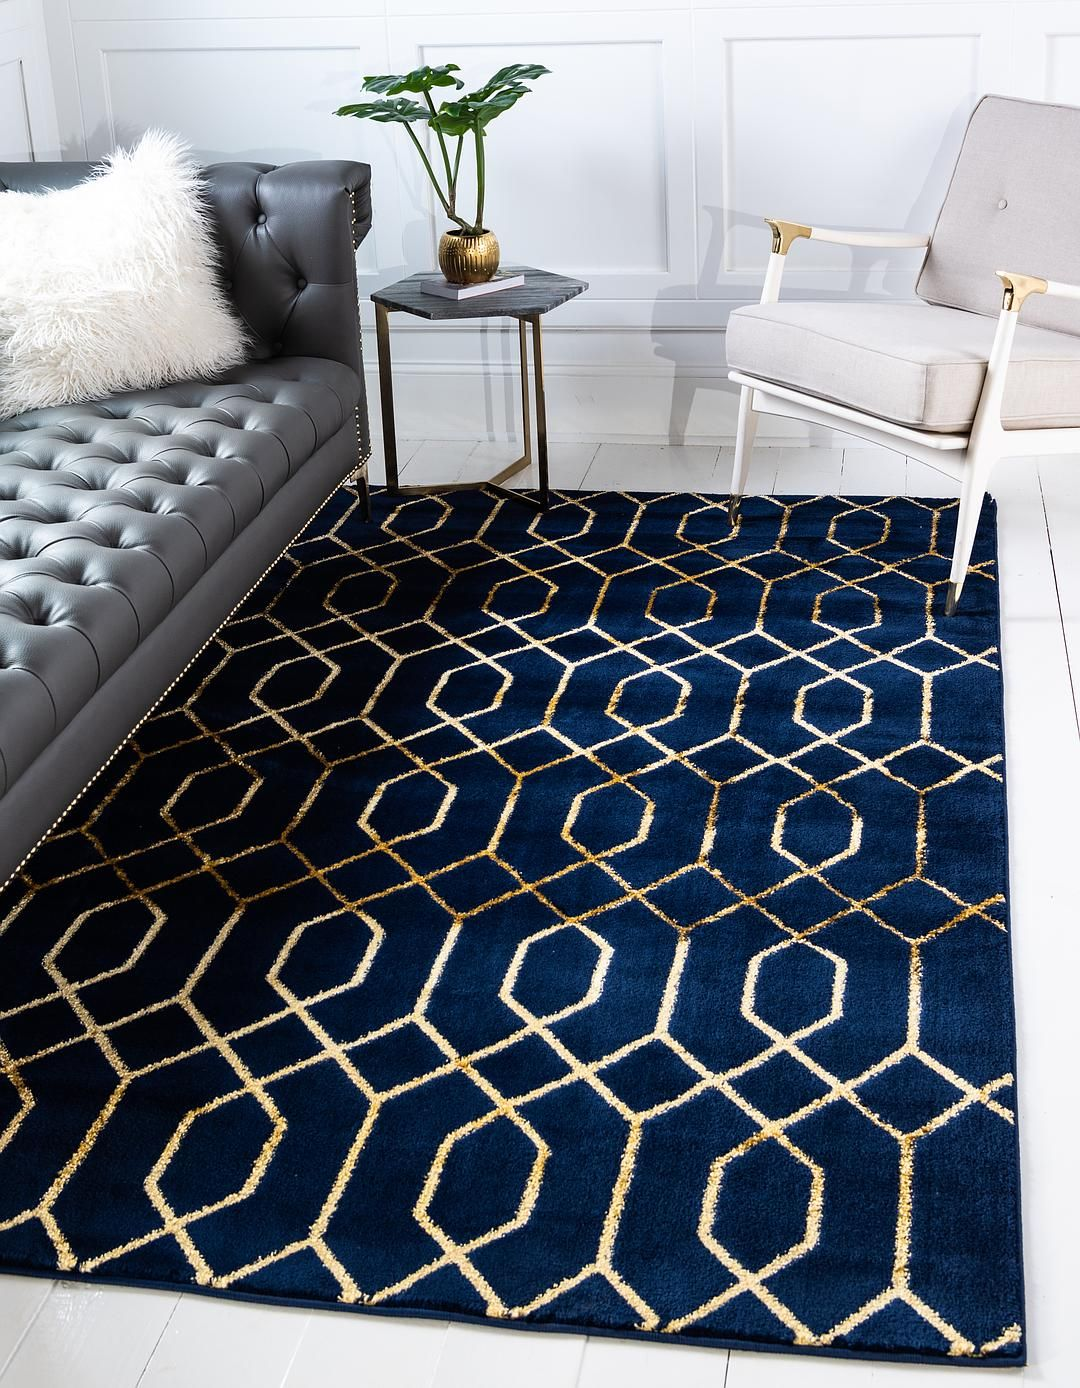 Navy Blue Gold Marilyn Monroe 2 X 3 Marilyn Monroe Glam Trellis Rug Area Rugs Rugs Com Blue And Gold Bedroom Gold Living Room Navy Living Rooms